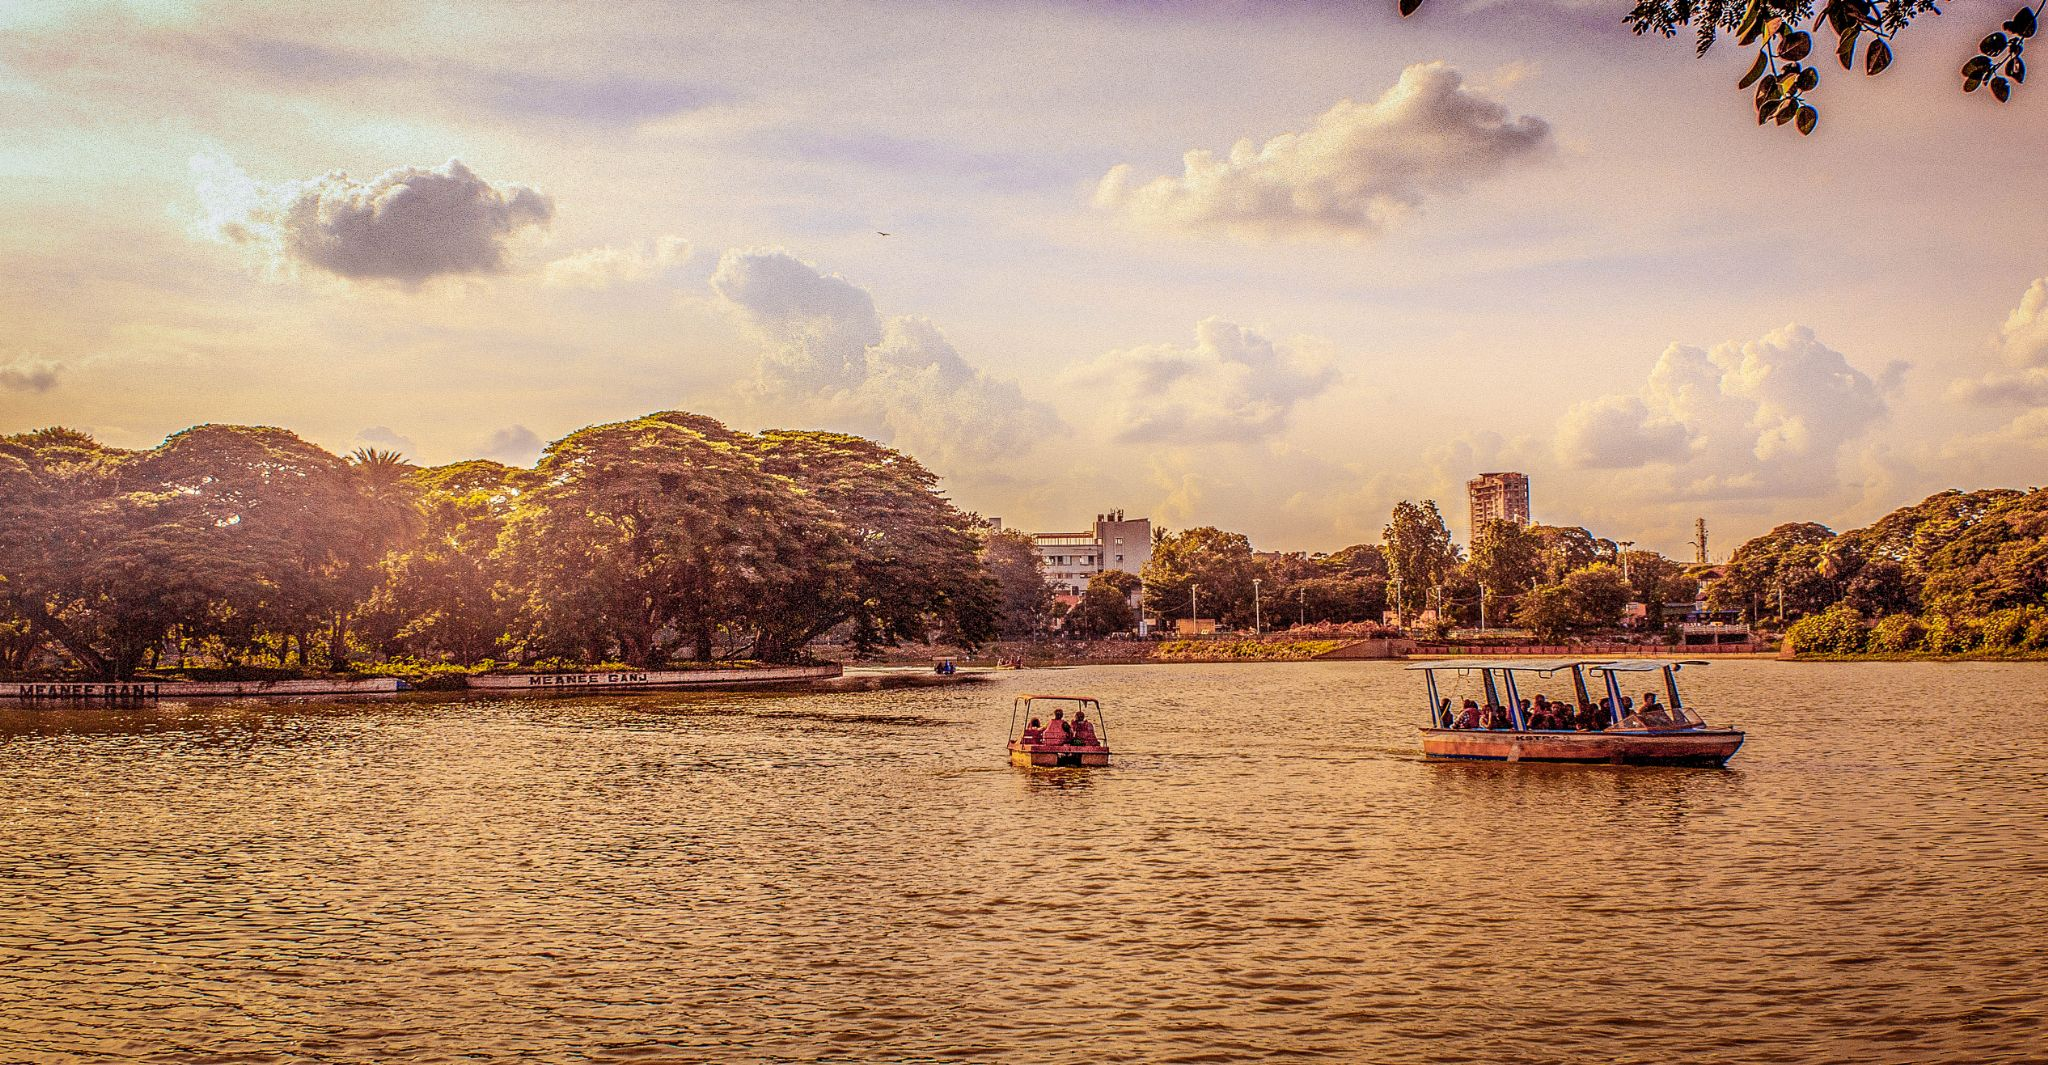 Evening Scene at Ulsoor Lake, Bangalore, India by joyman.xavio